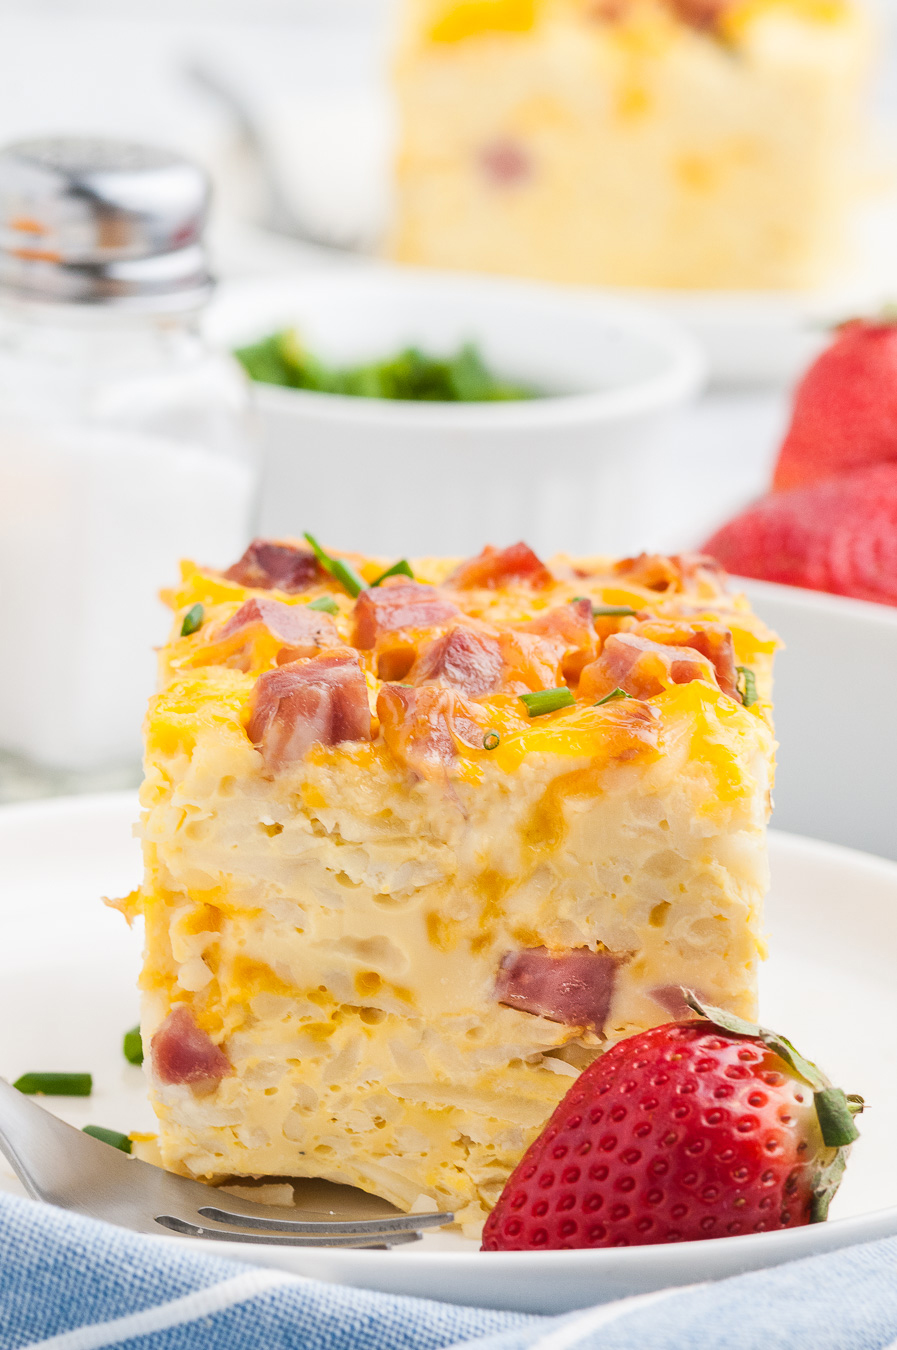 tall breakfast casserole on a dish with chunks of ham showing through. Paired with a fresh strawberry garnish. Hint of blue napkin near plate.